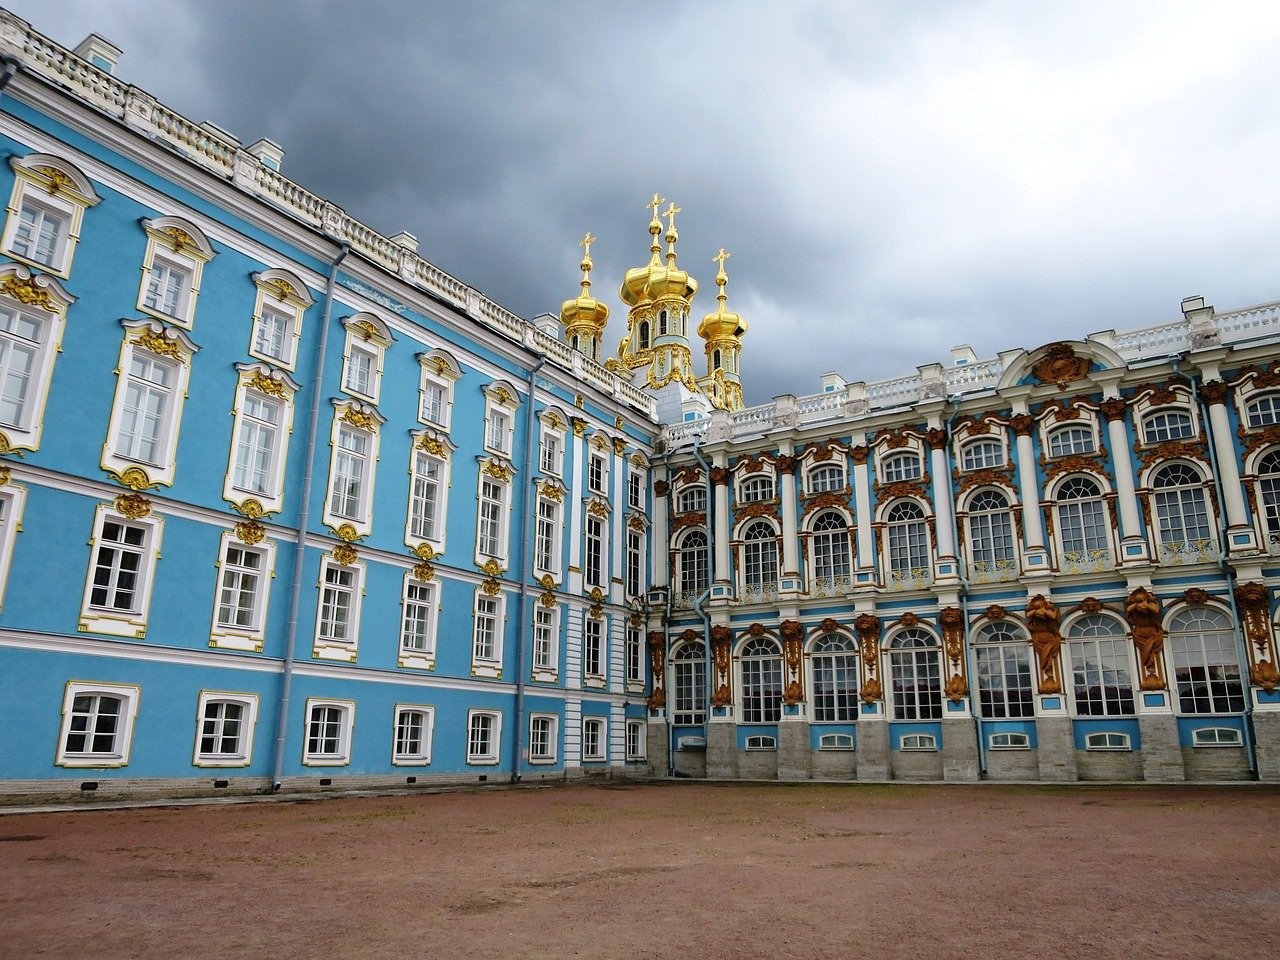 catherine's palace, st petersburg, russia